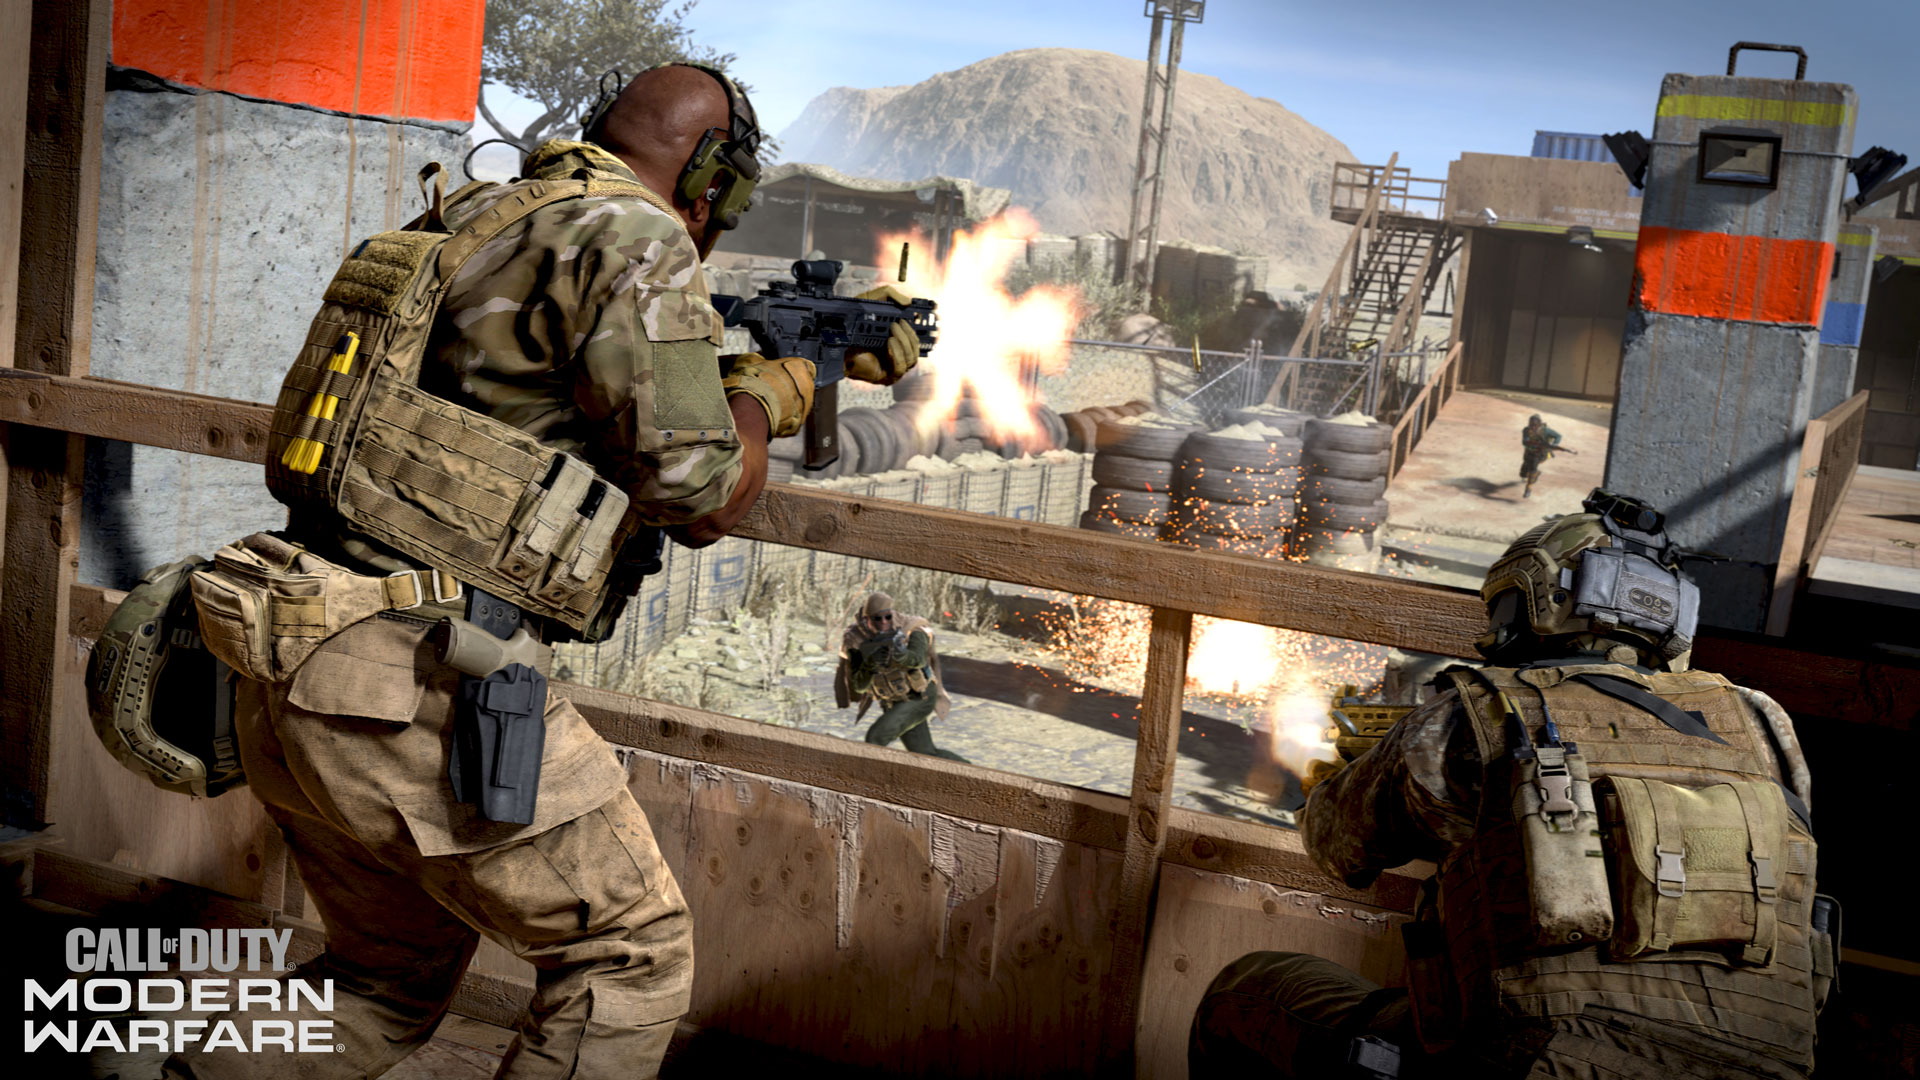 call of duty modern warfare online free